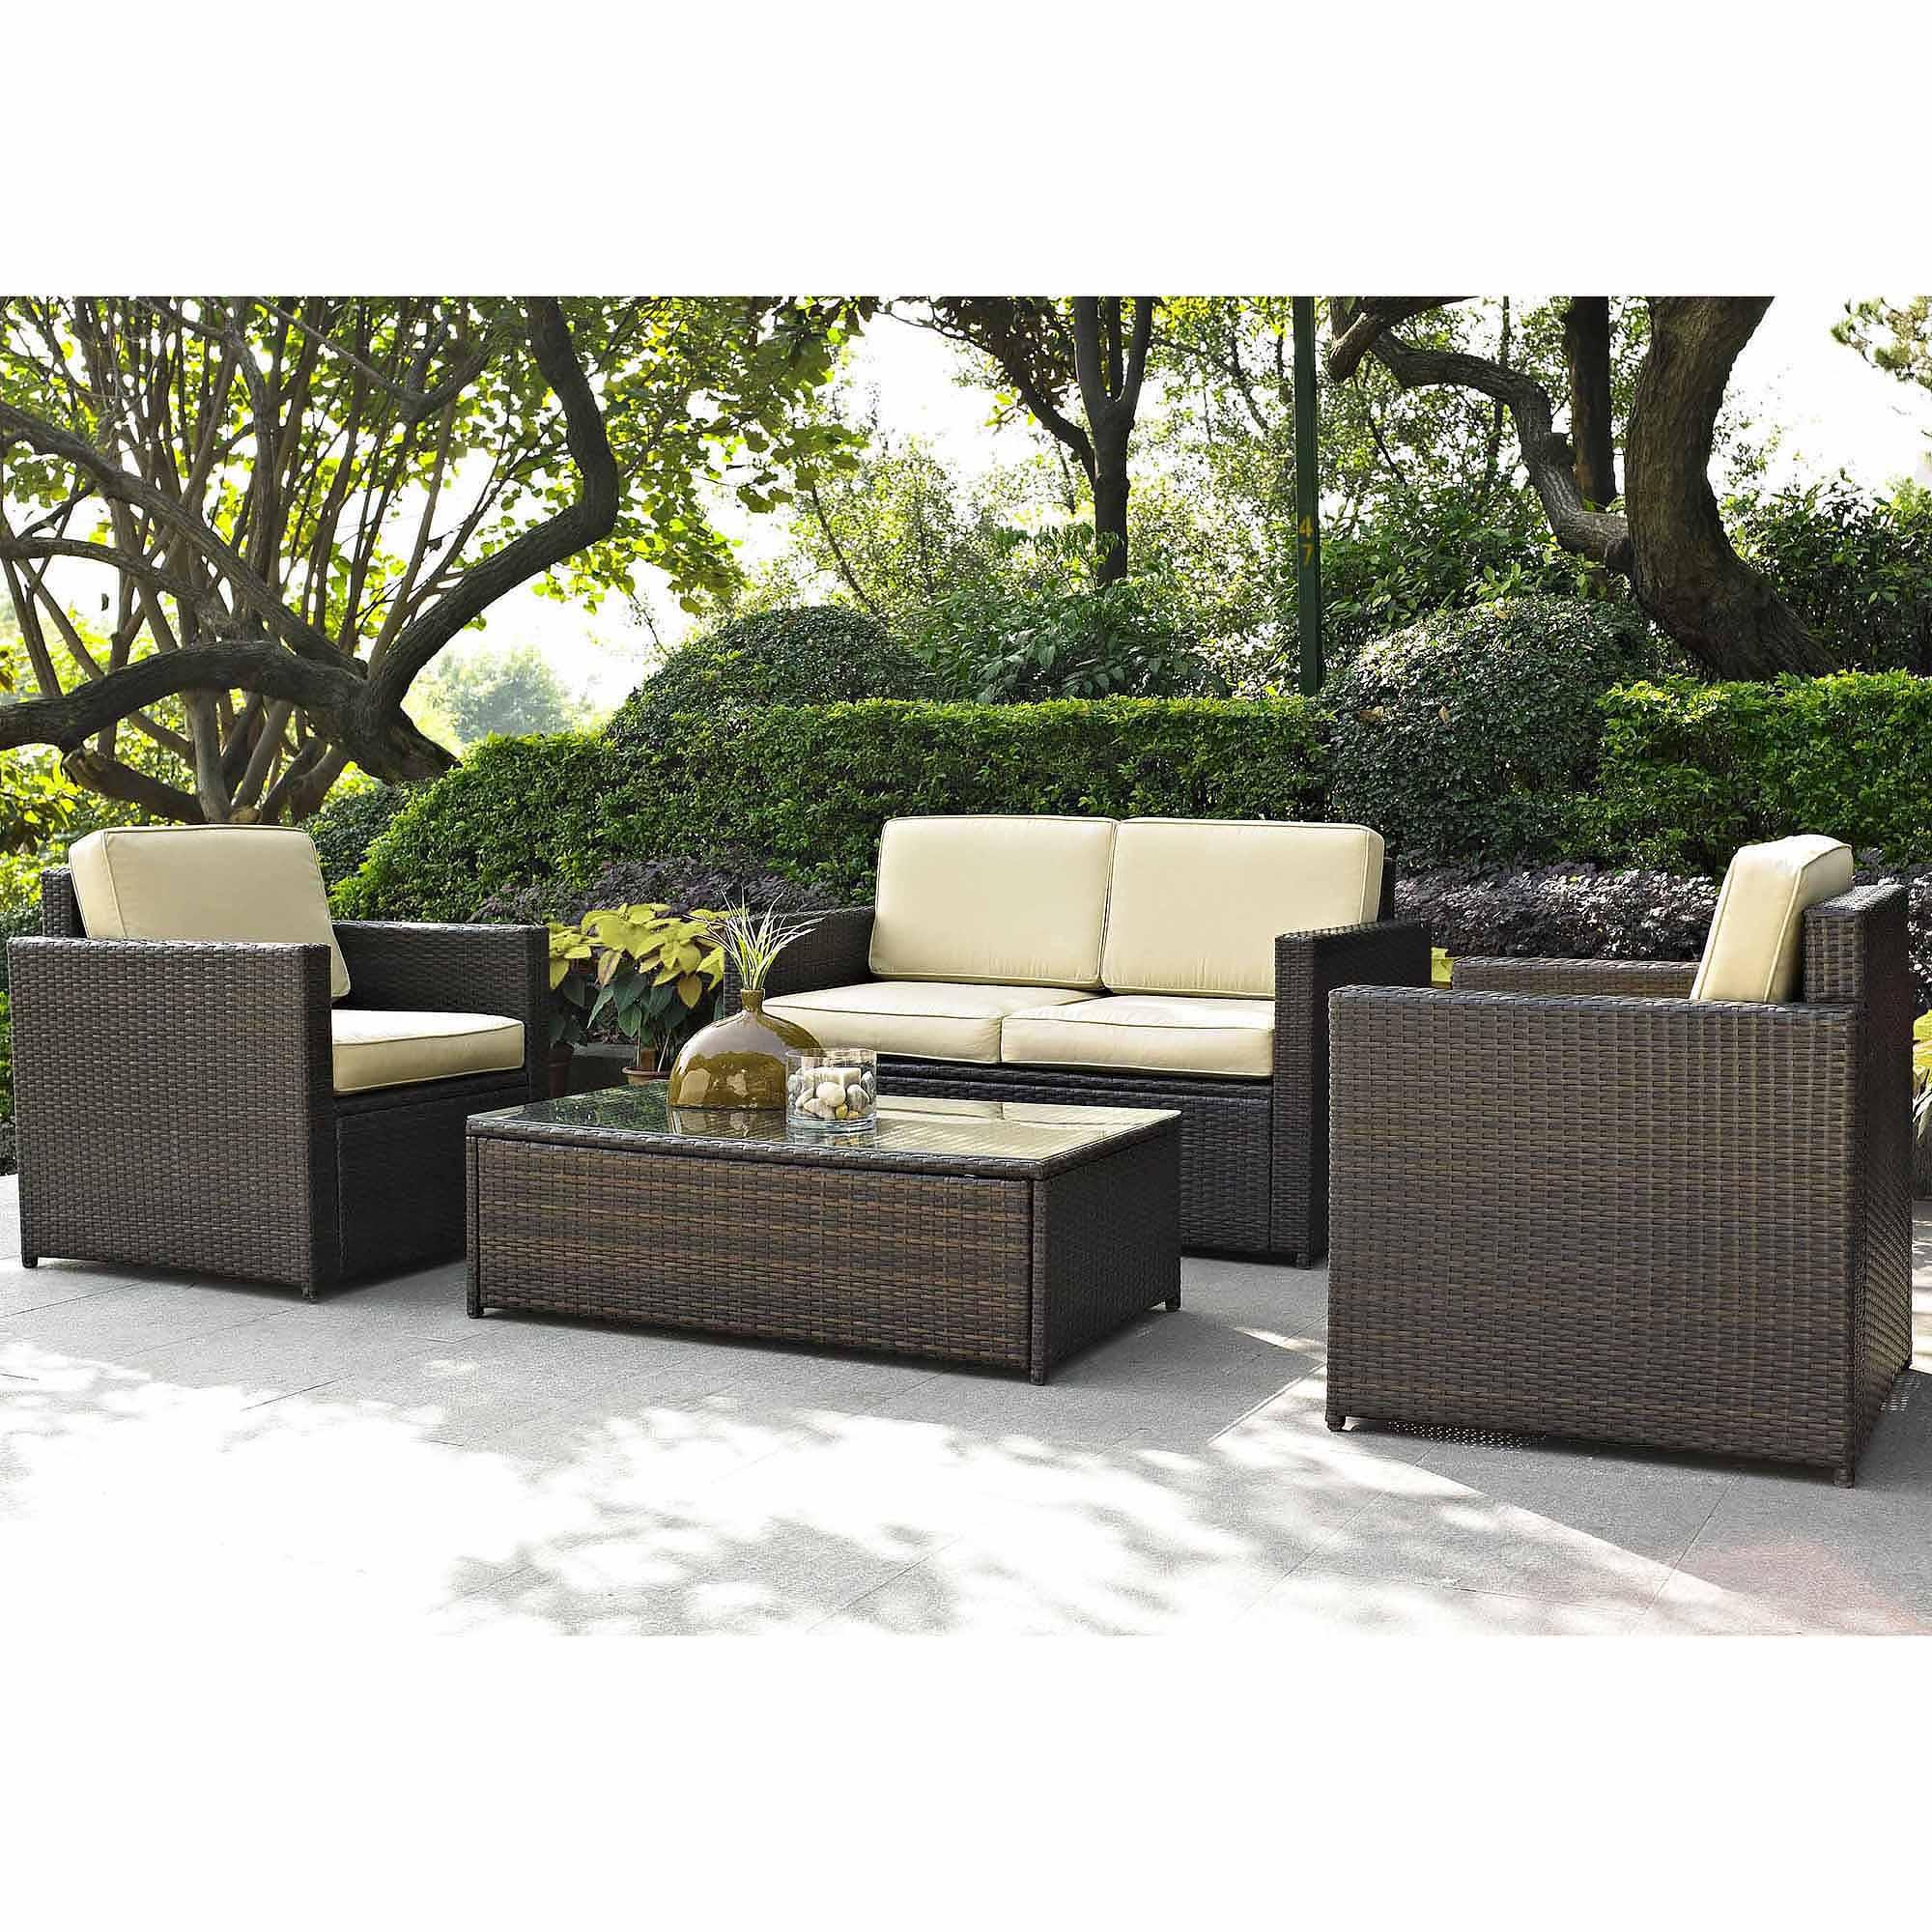 outdoor wicker furniture photo - 1 QXFGKRT